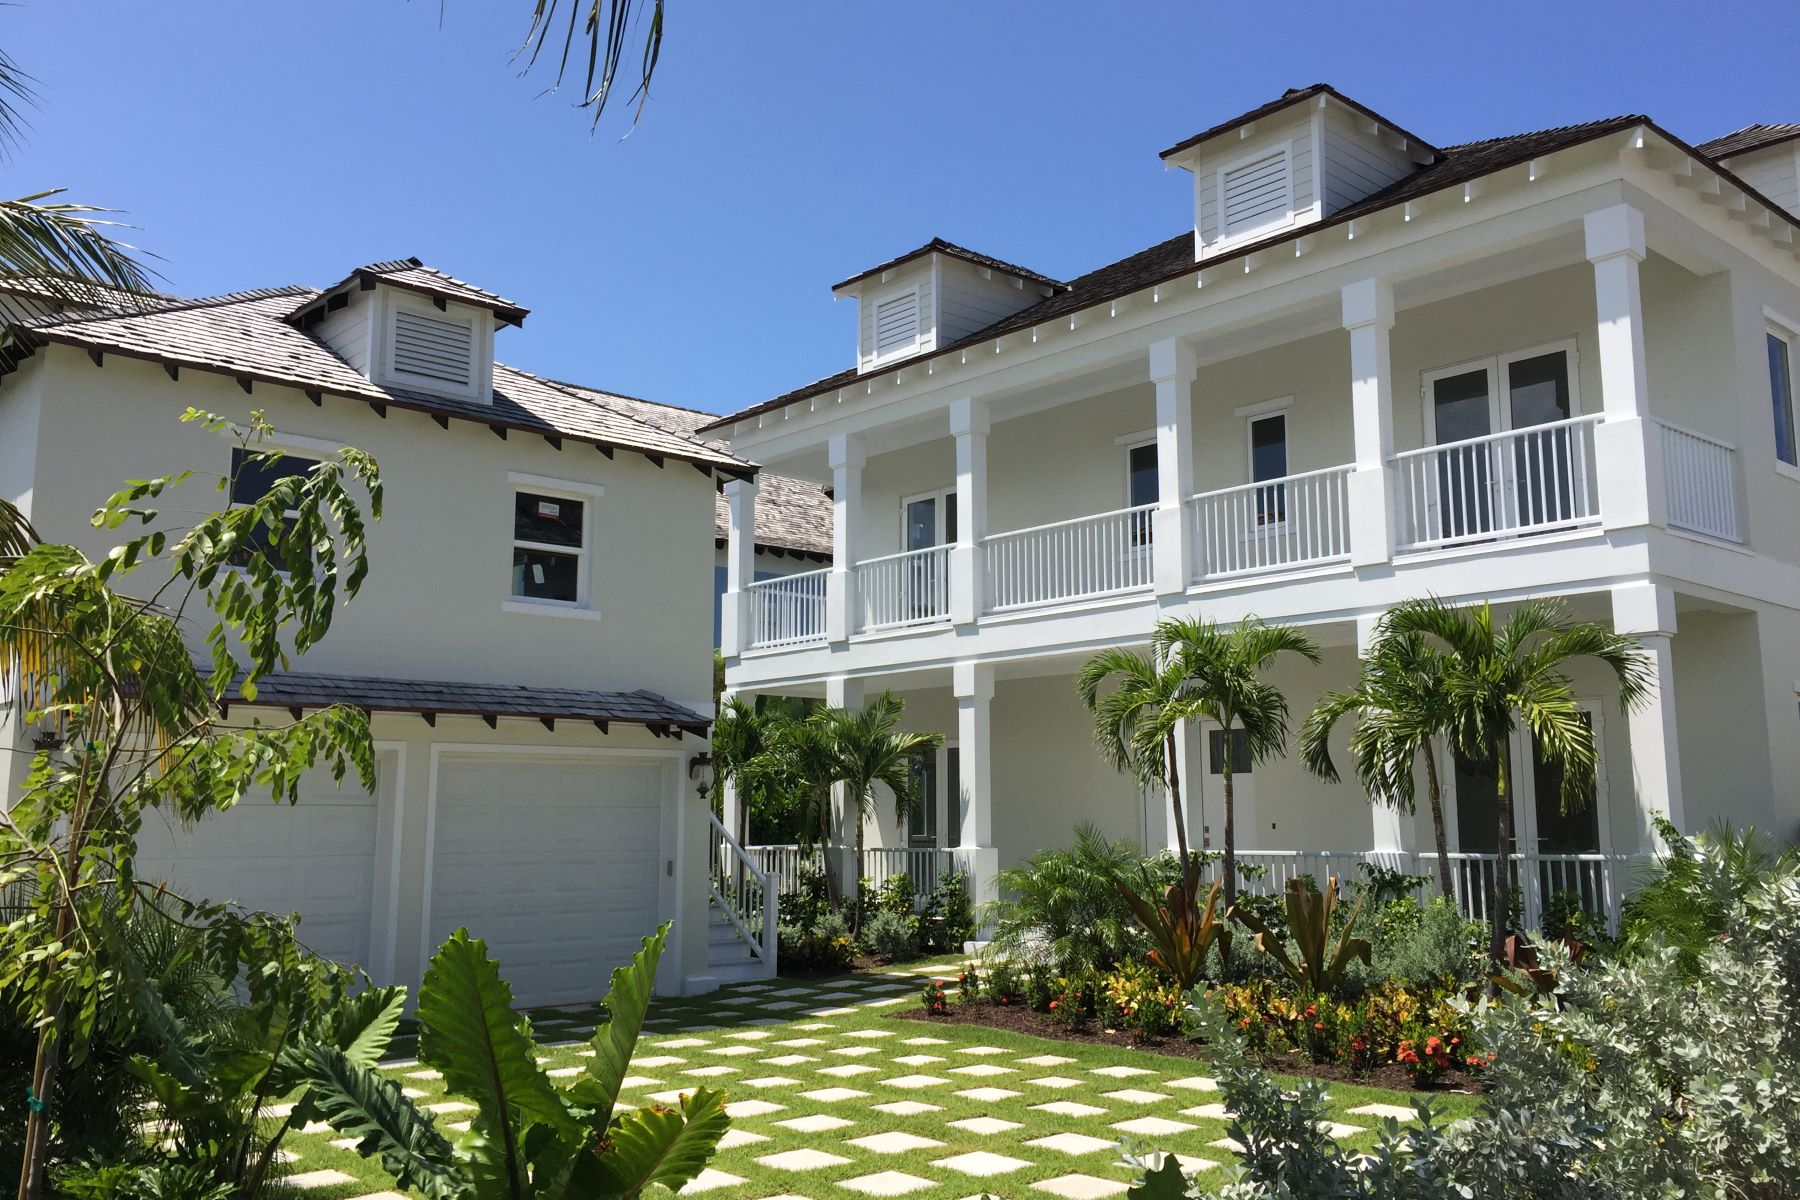 Vivienda unifamiliar por un Venta en Charleston, Old Fort Bay Old Fort Bay, Nueva Providencia / Nassau Bahamas